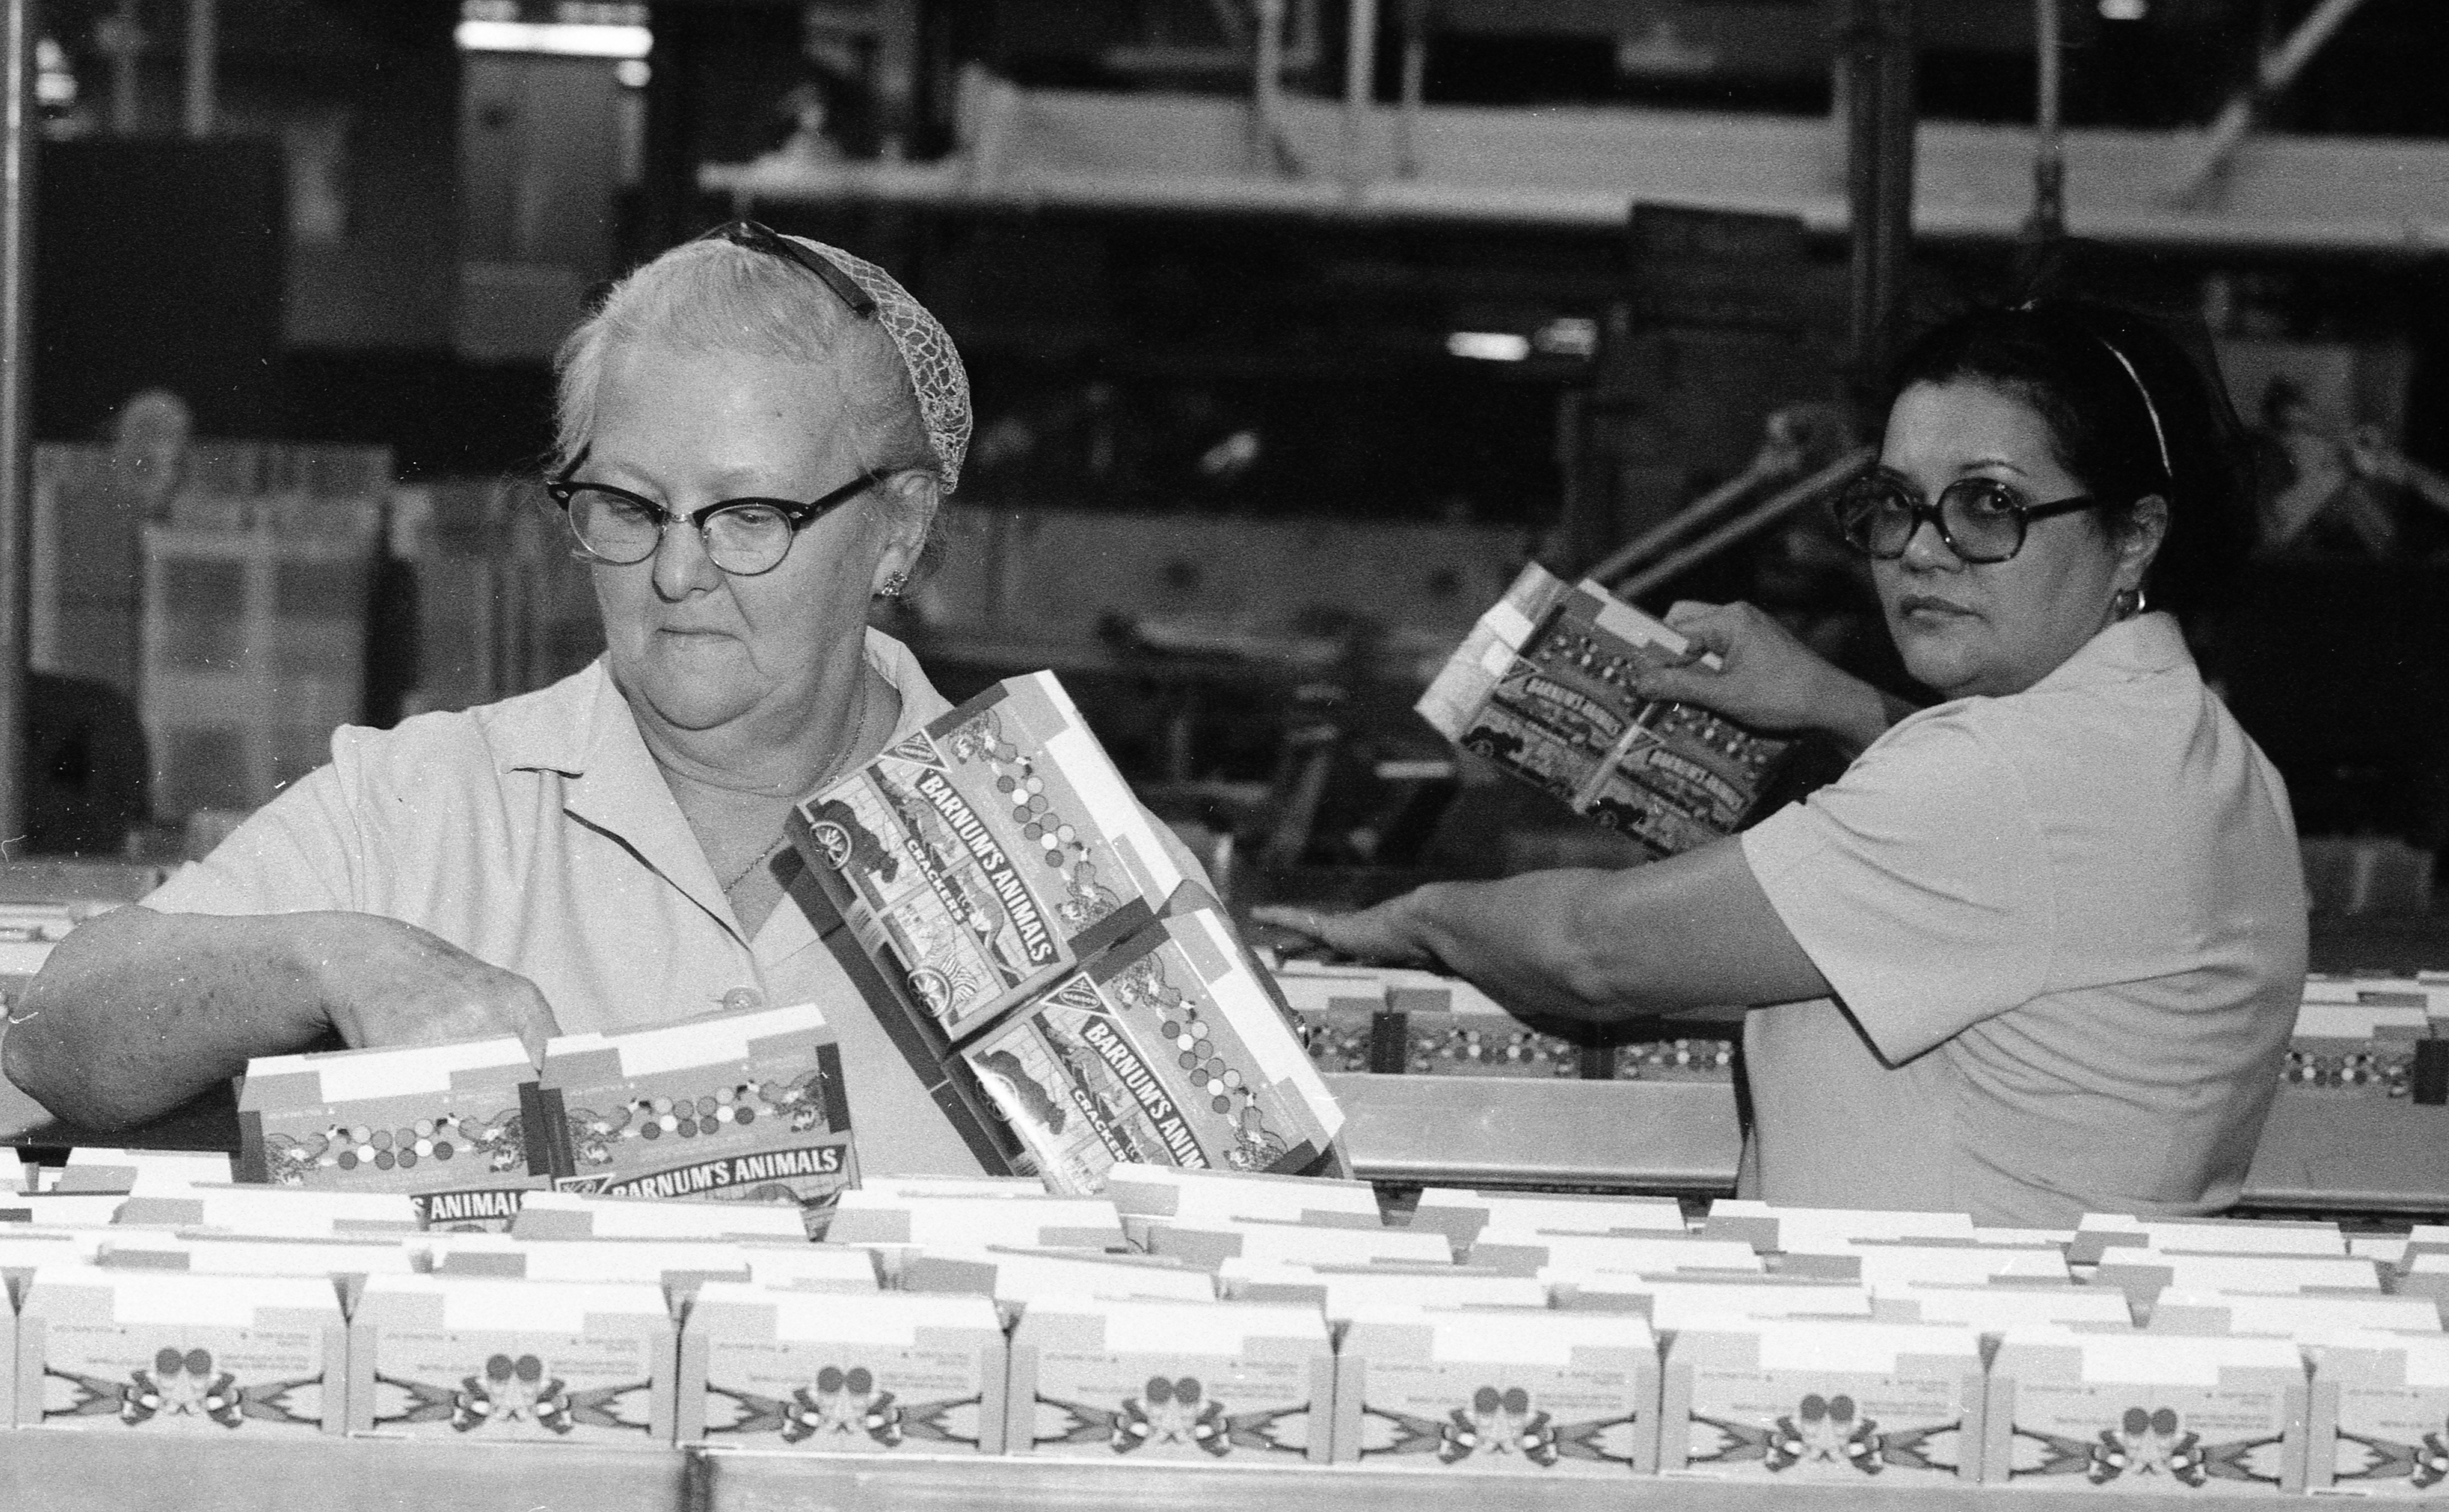 Two workers watch over the line of boxes which will shortly contain Barnum's Animal Cracker cookies at the Nabisco manufacturing plant on Route 208 in Fair Lawn, N.J., on November 3, 1977.